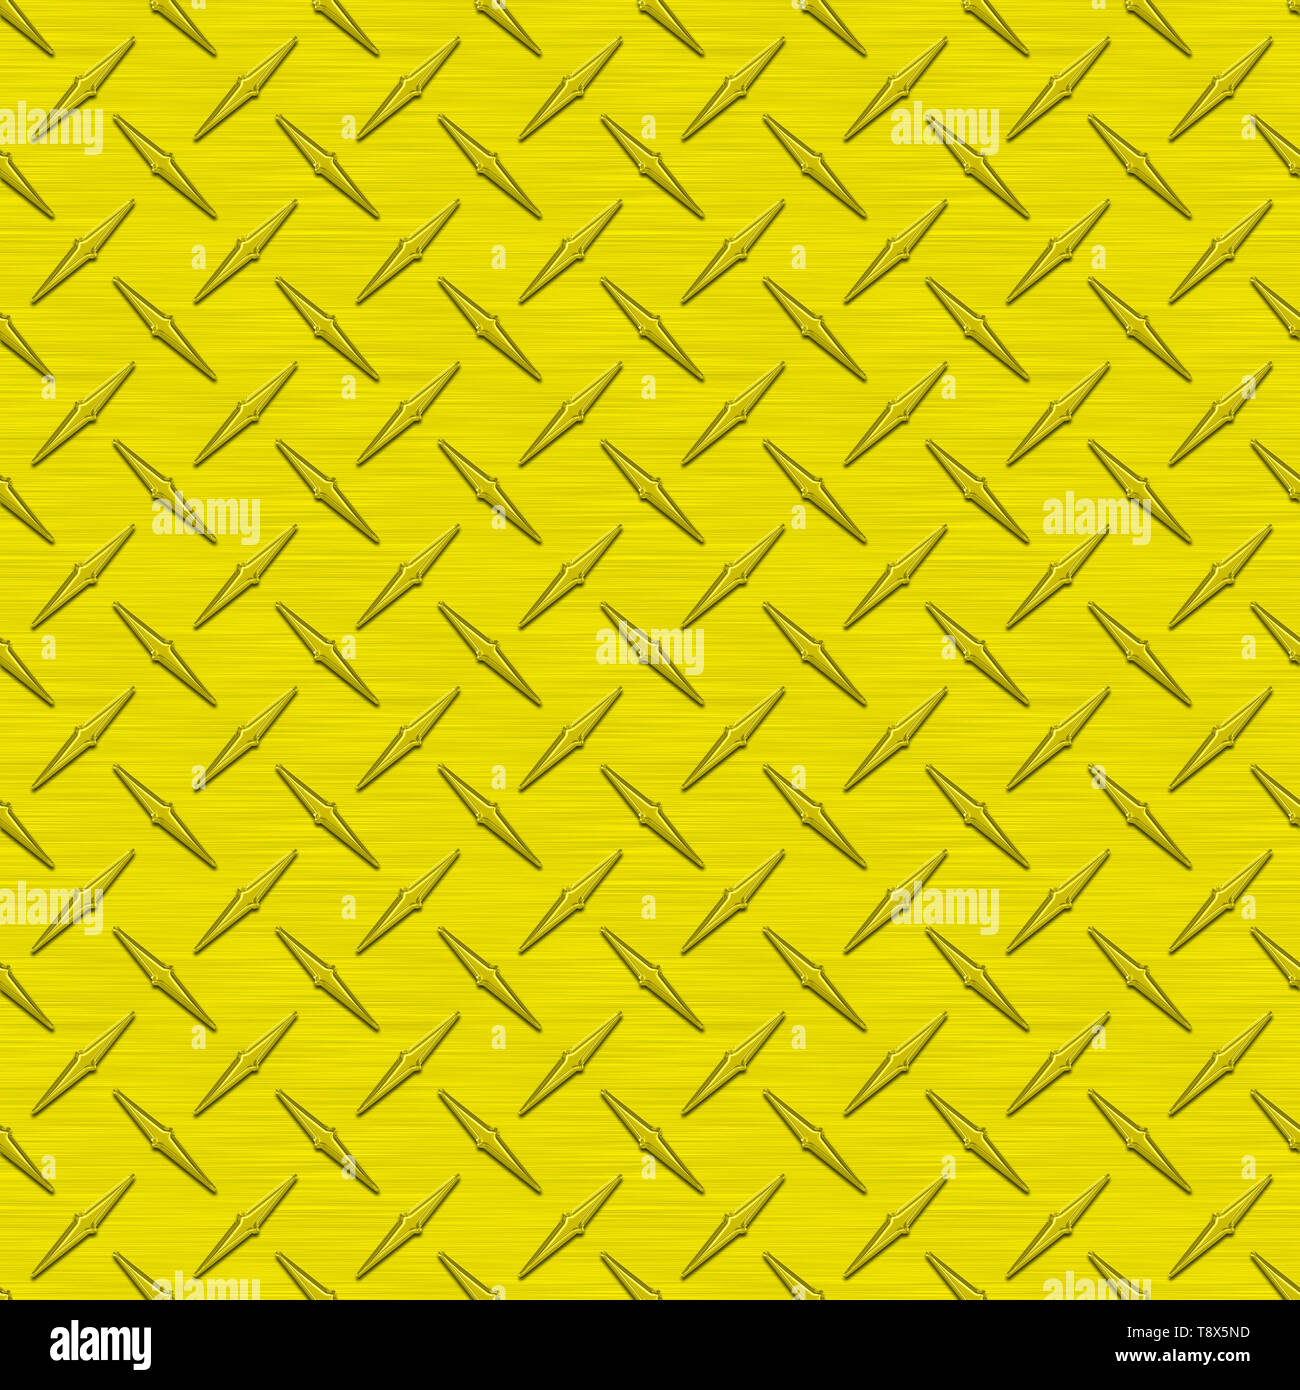 Yellow Diamond Plate Metal Seamless Texture Tile - Stock Image